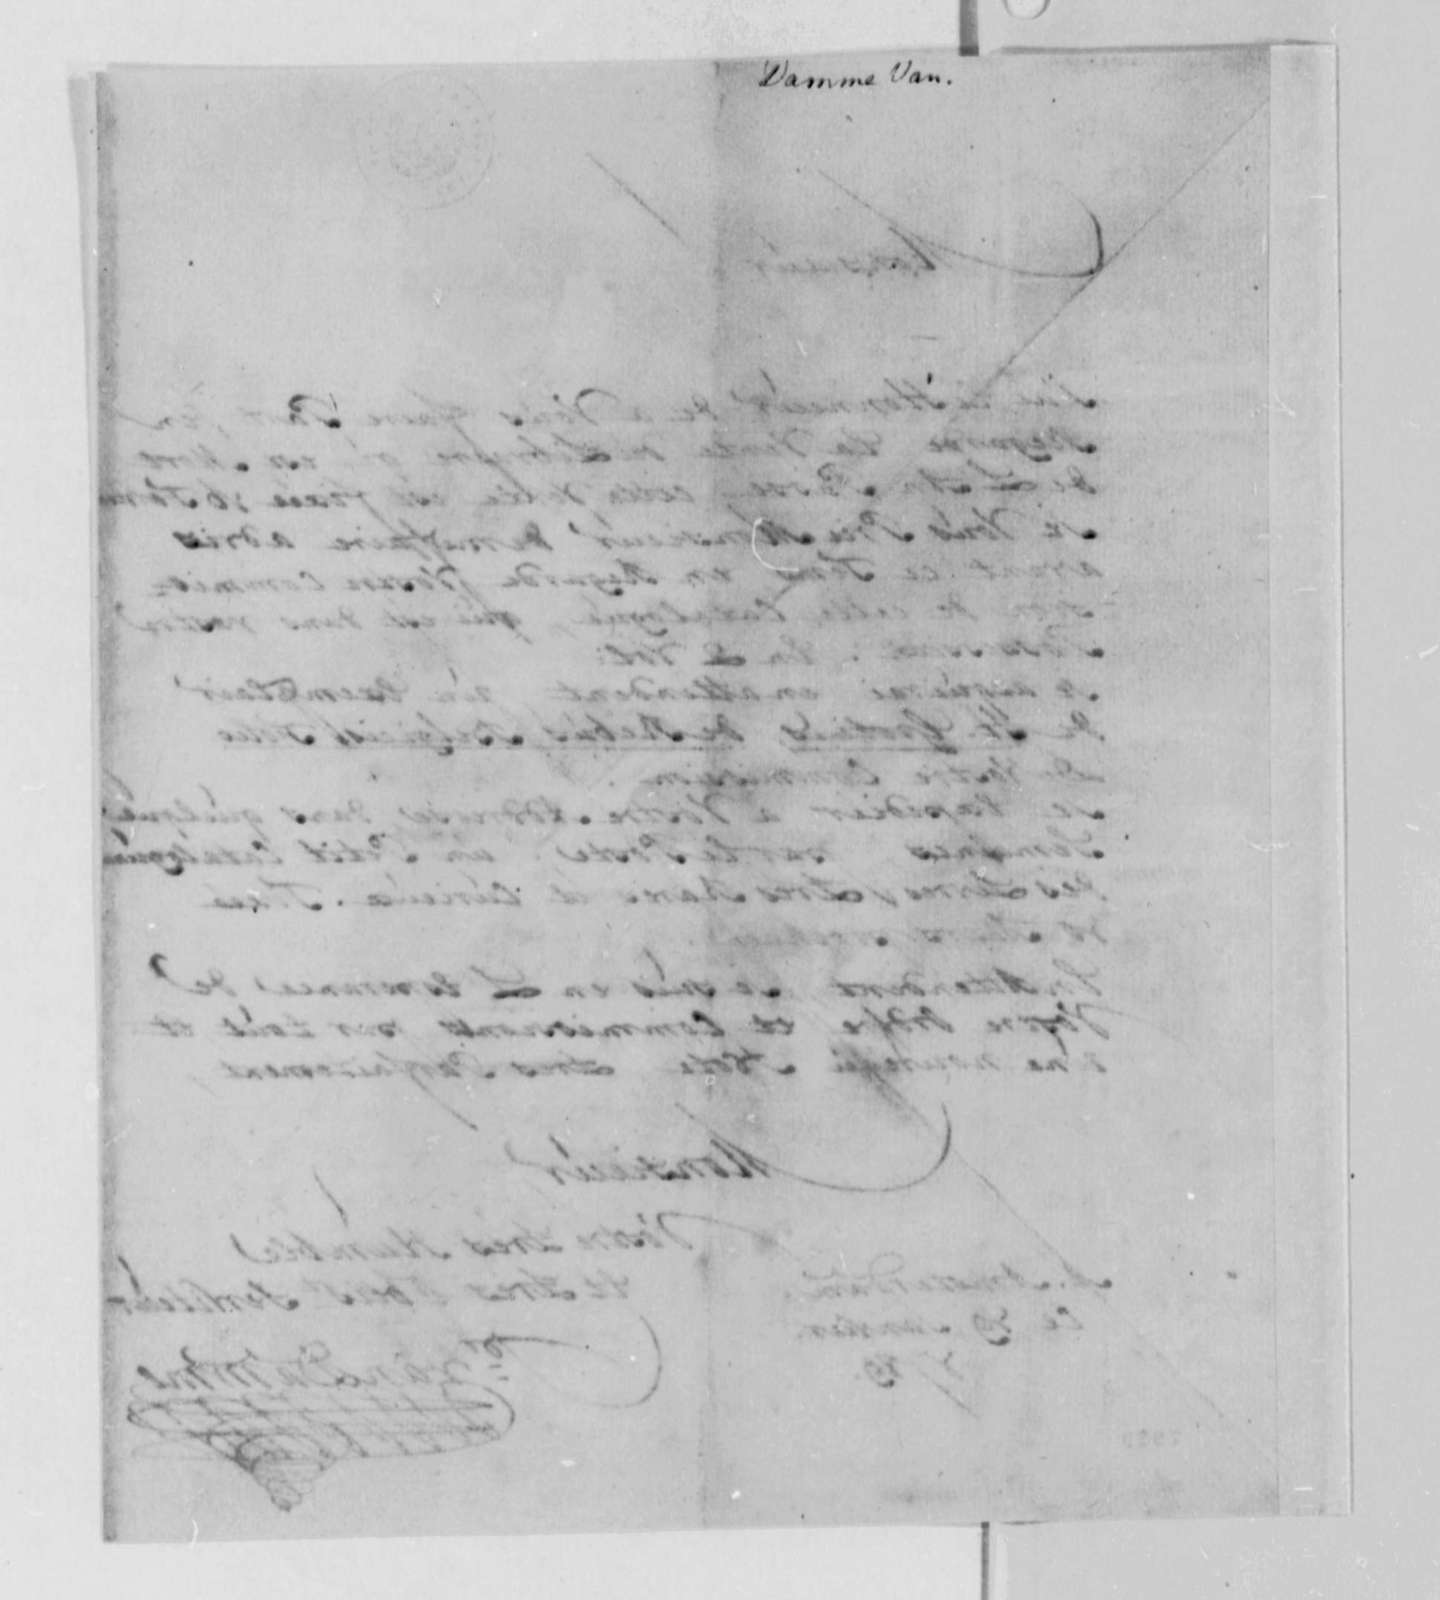 Pieter van Damme to Thomas Jefferson, January 29, 1789, in French